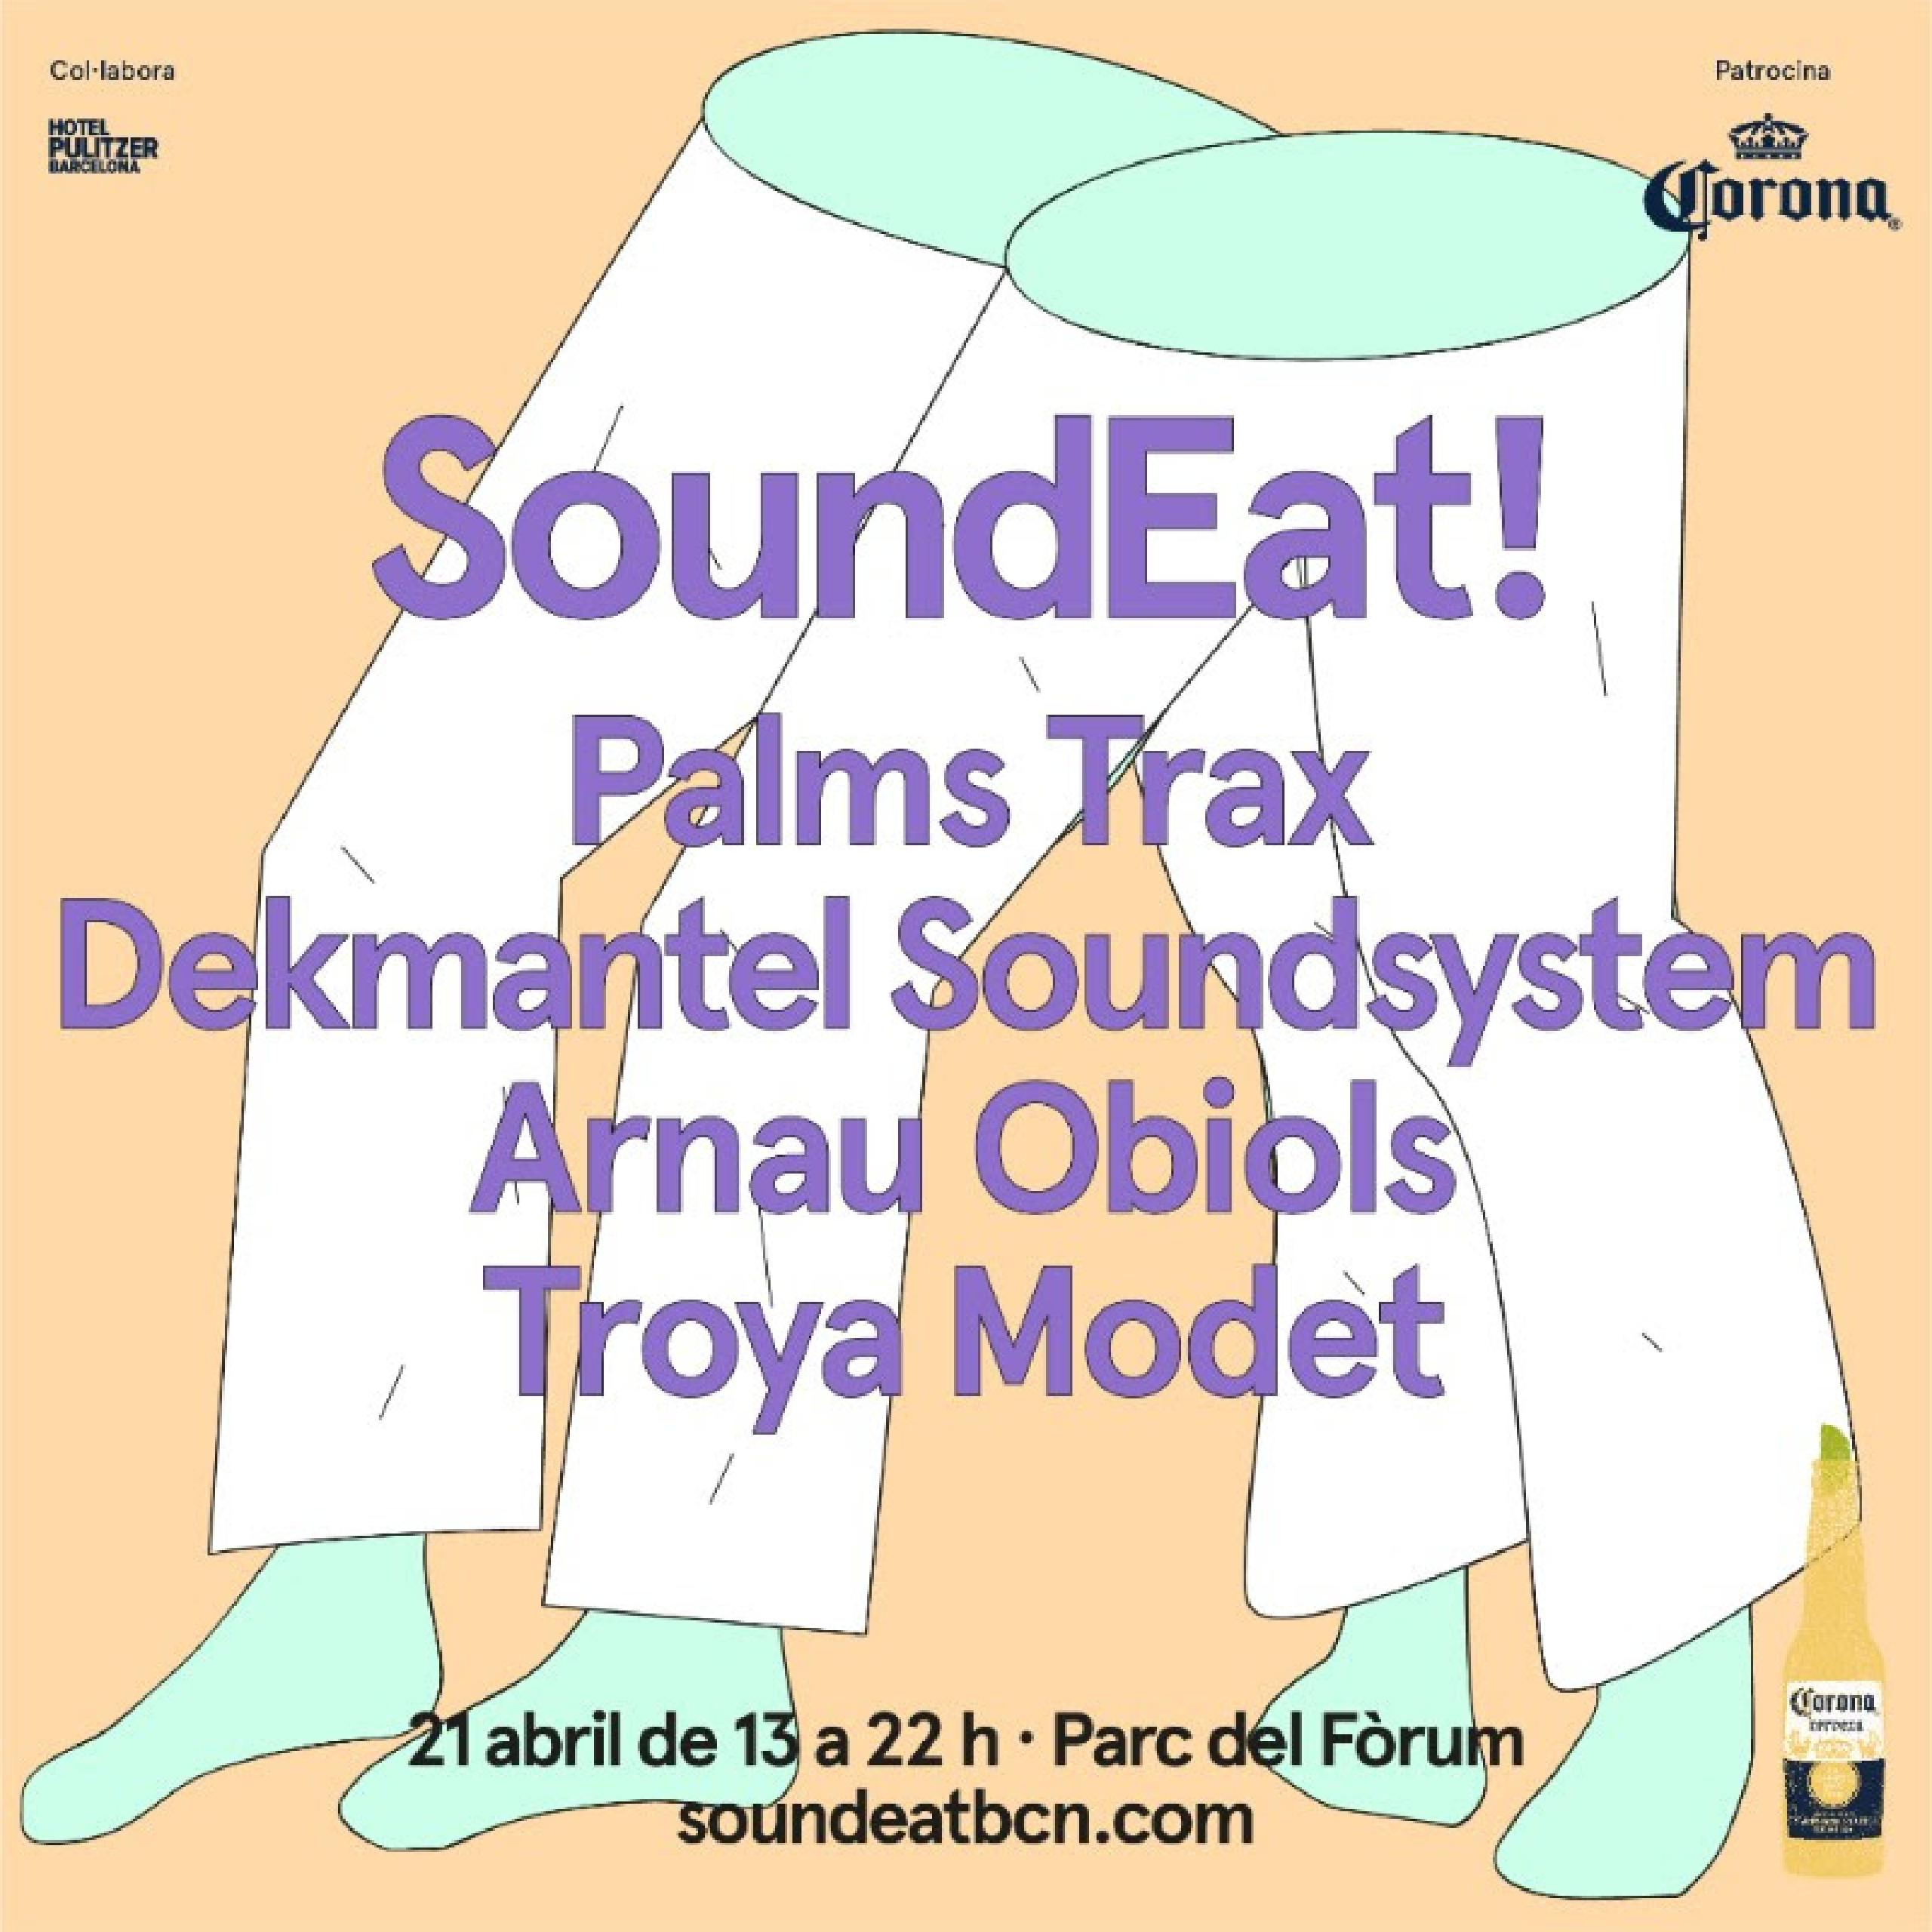 Cartel Soundeat 21 abril 2018 Barcelona